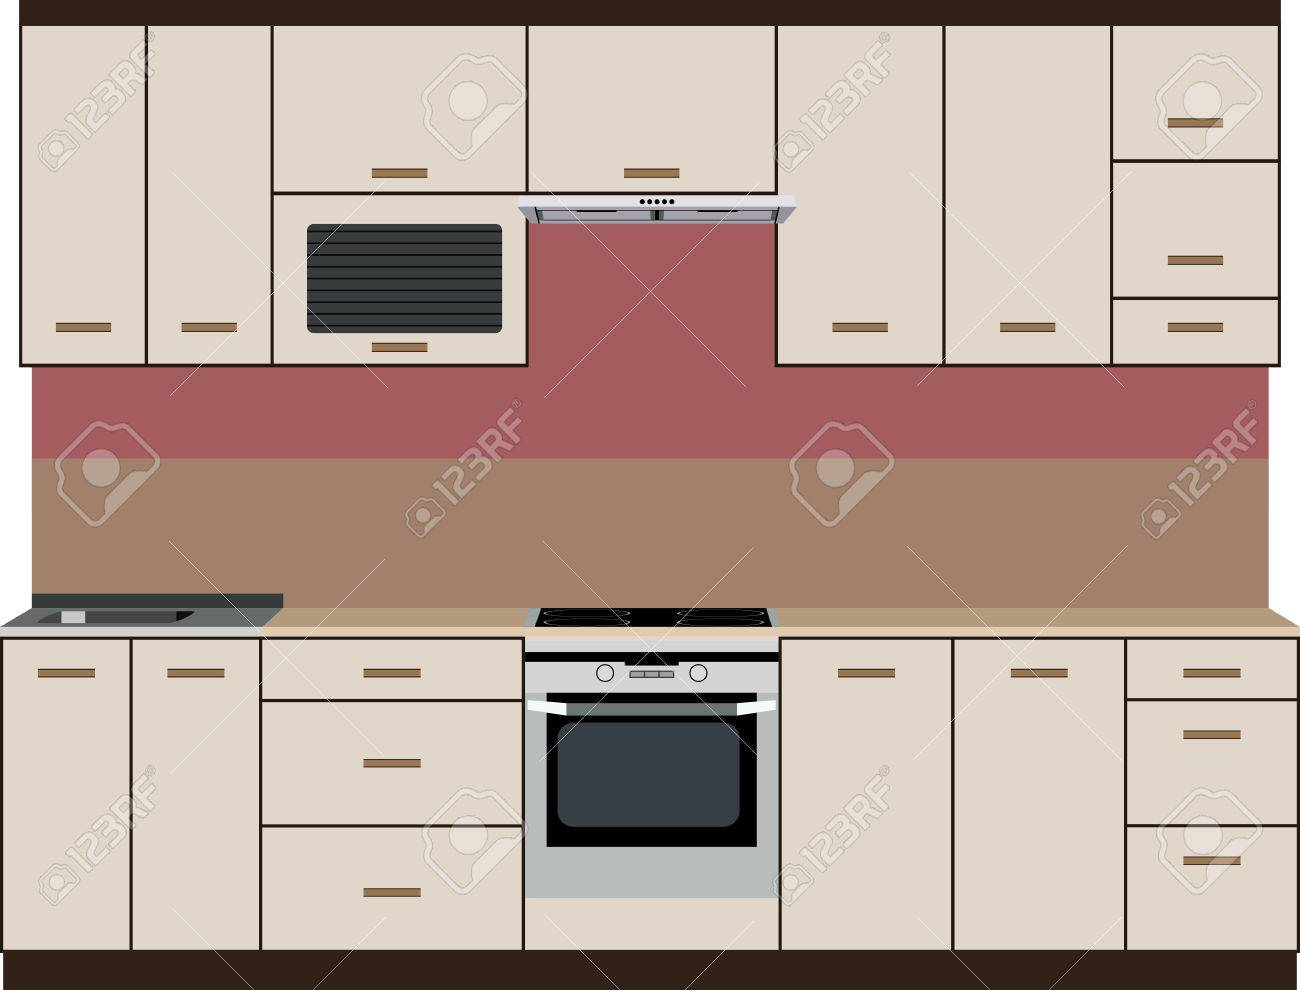 painted front kitchen with stove, cabinets and sink royalty free